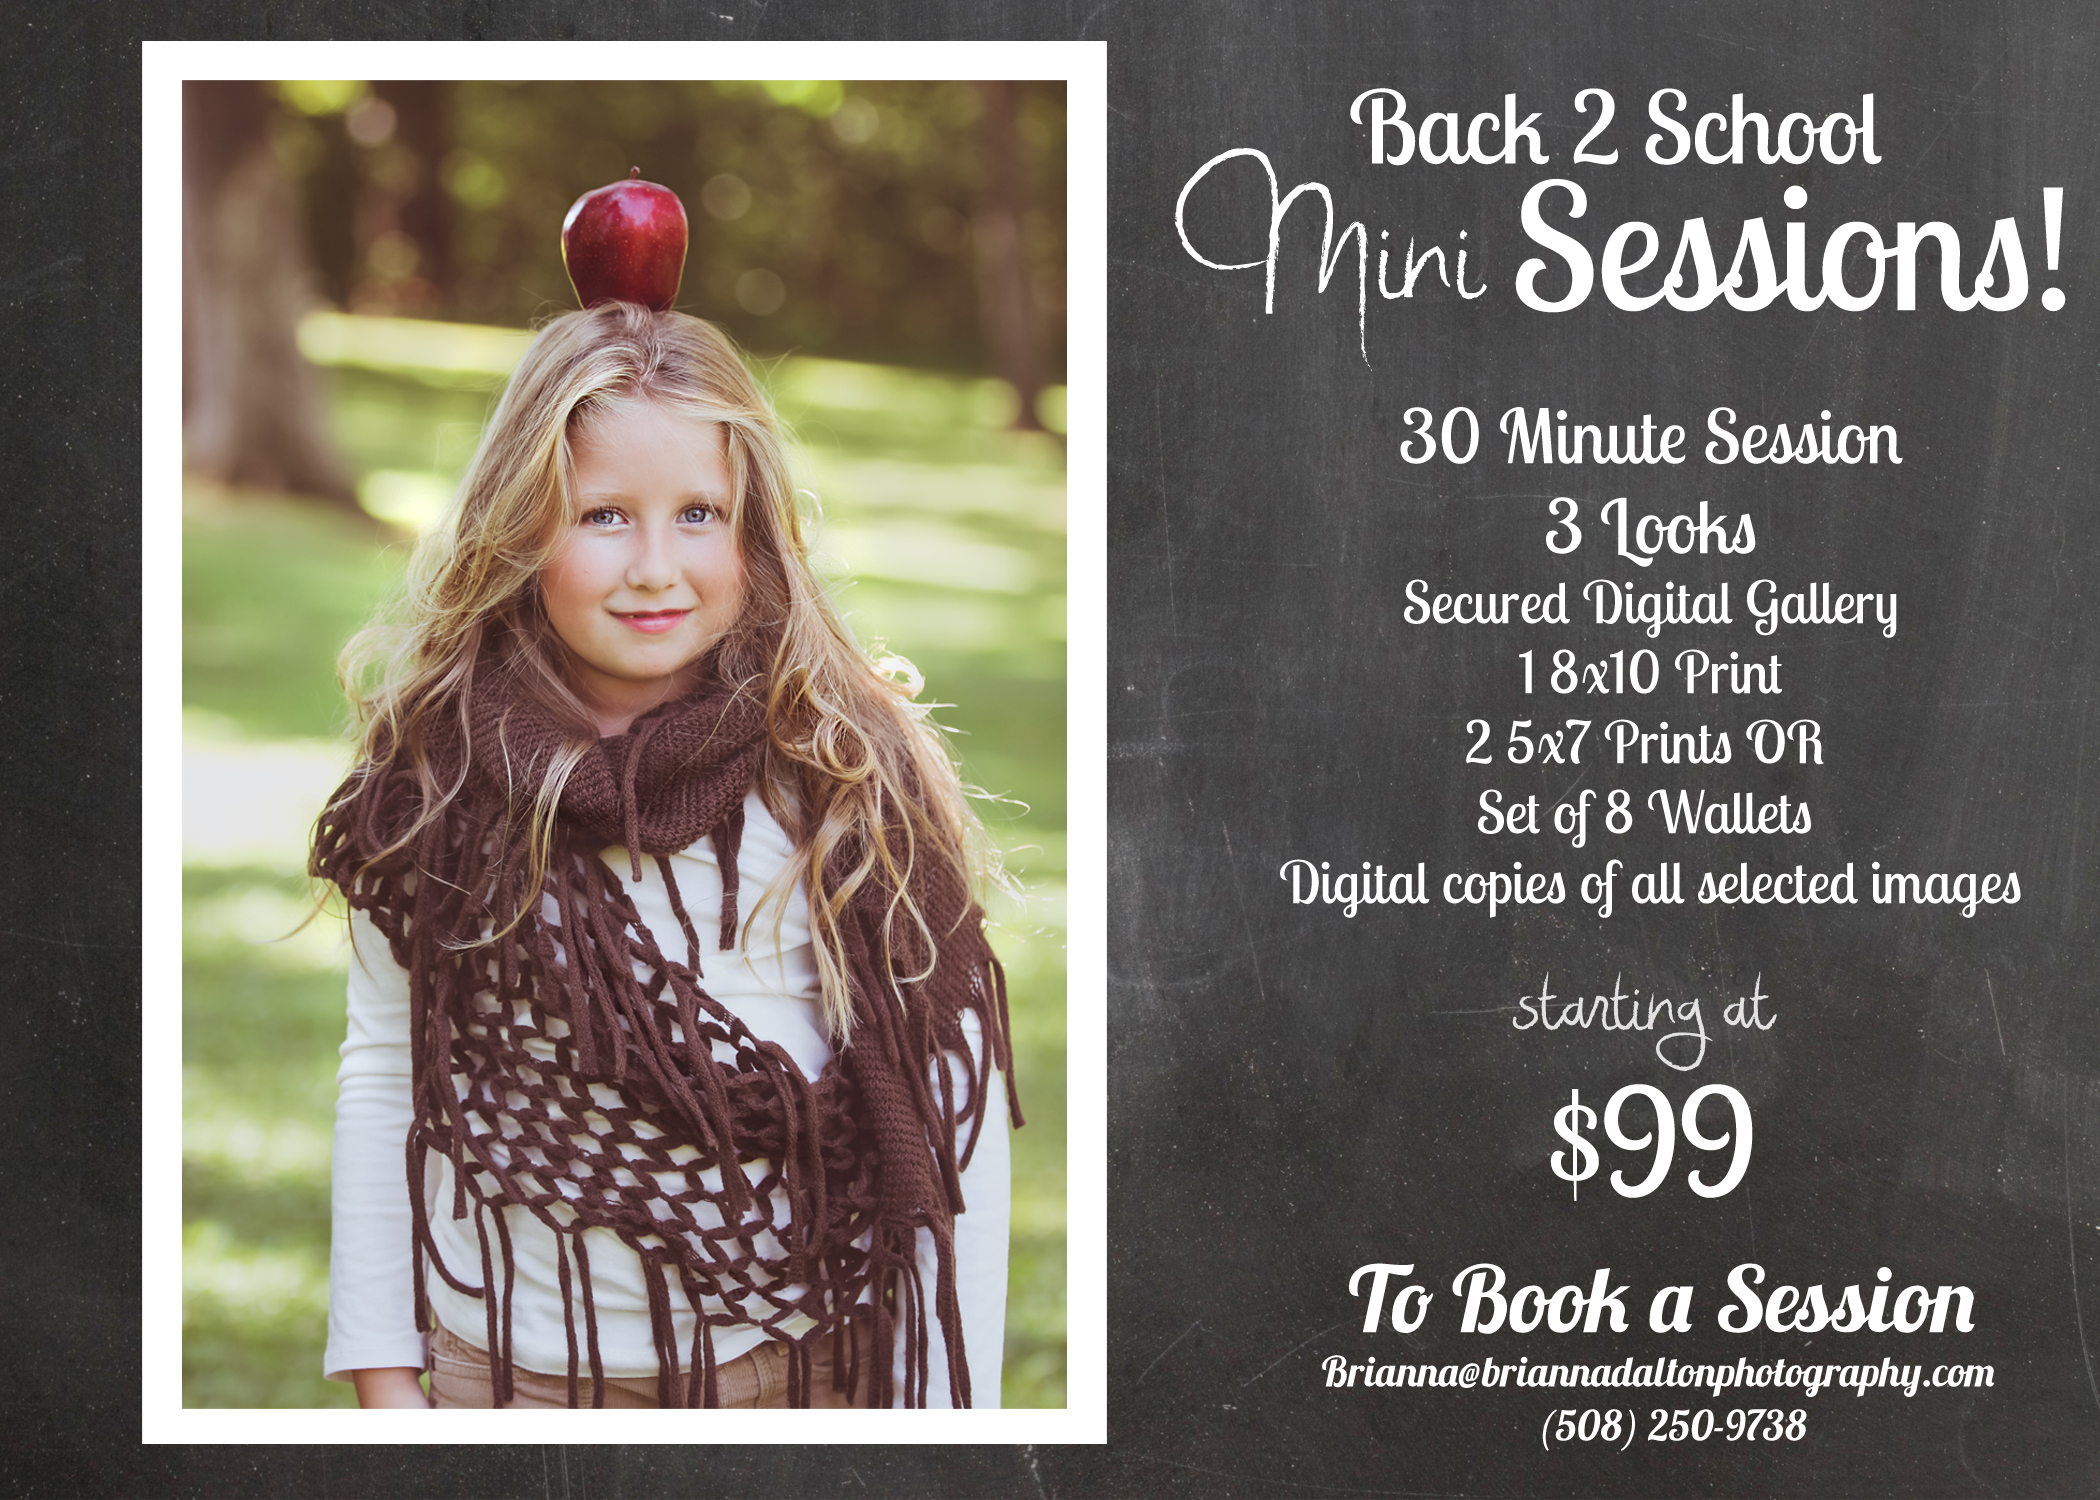 Back to School Mini Sessions! Special ends September 31st!